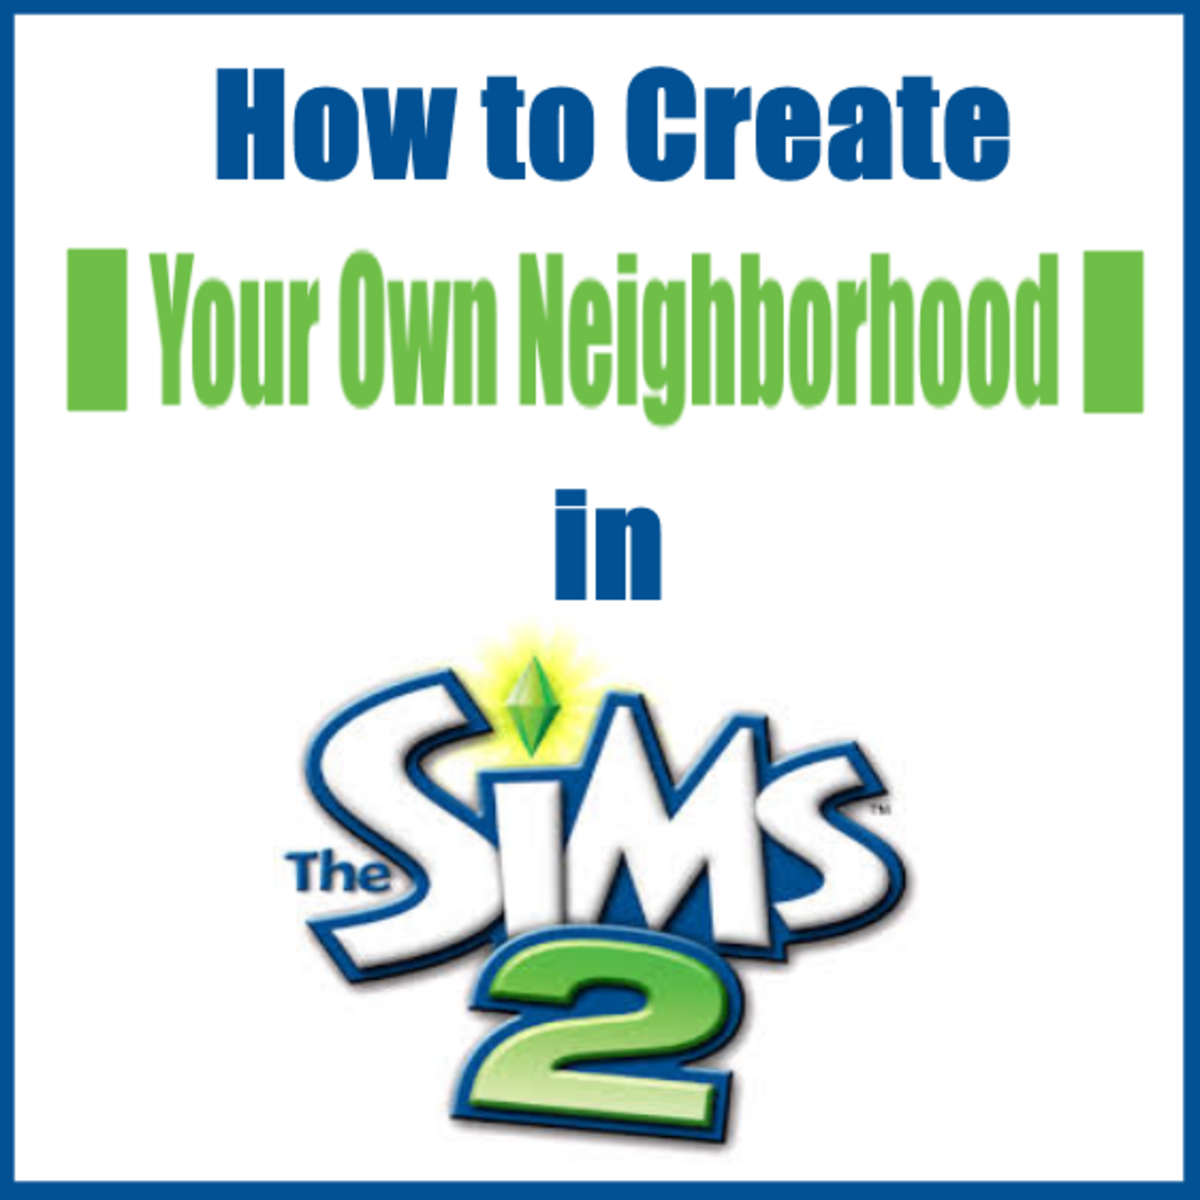 """Learn how to create your own neighborhood in """"The Sims 2"""" the quick and easy way!"""